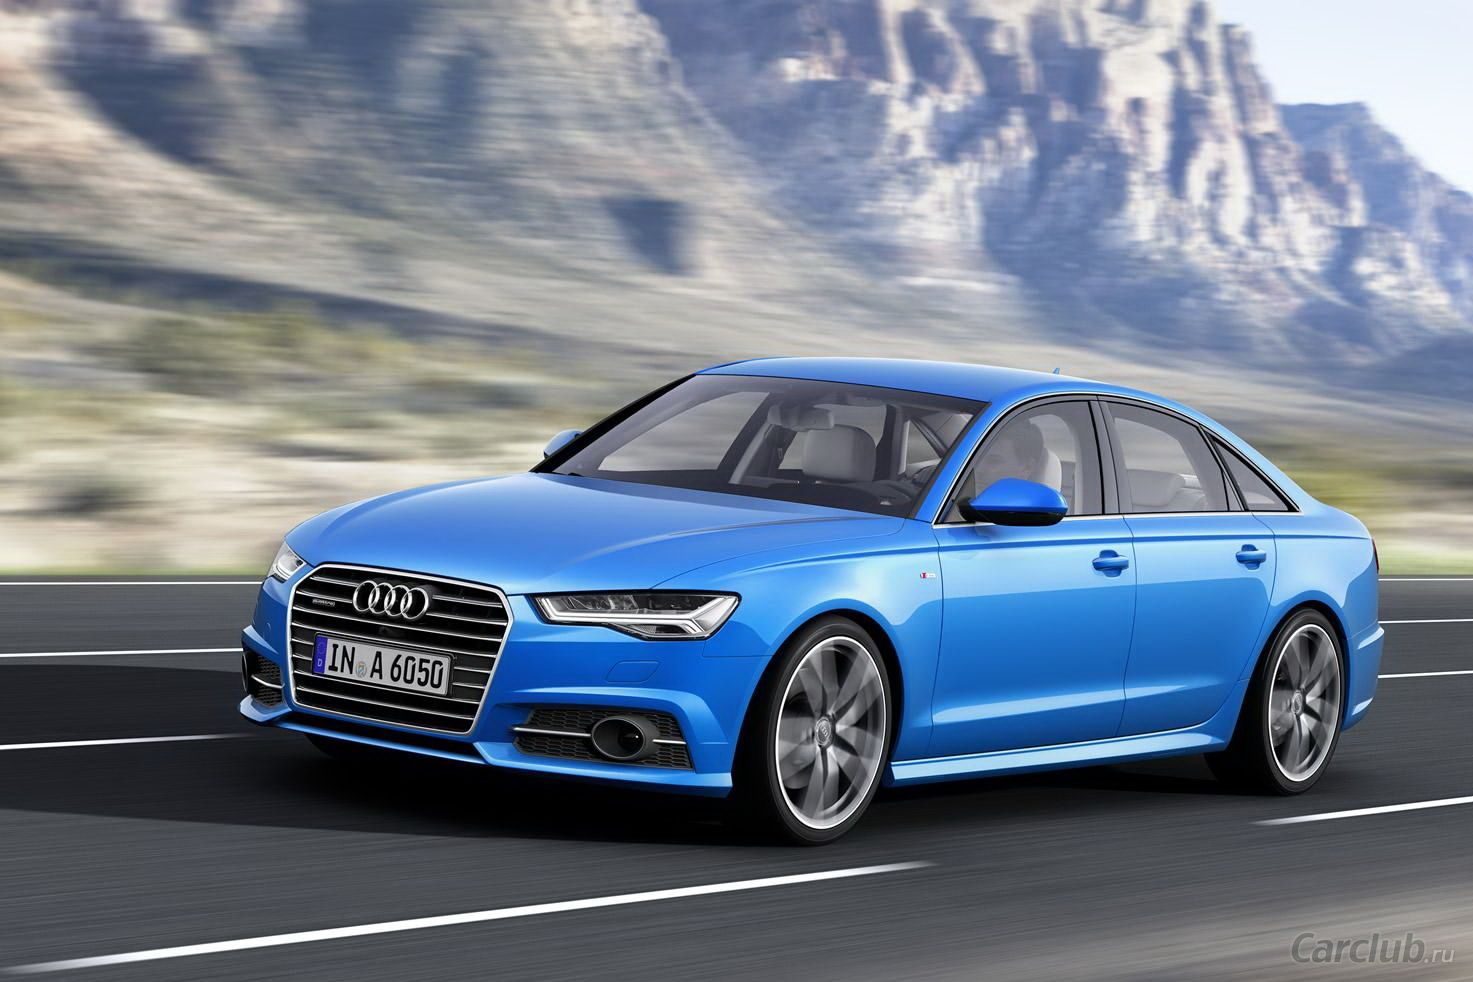 Audi S4 Wallpapers 18